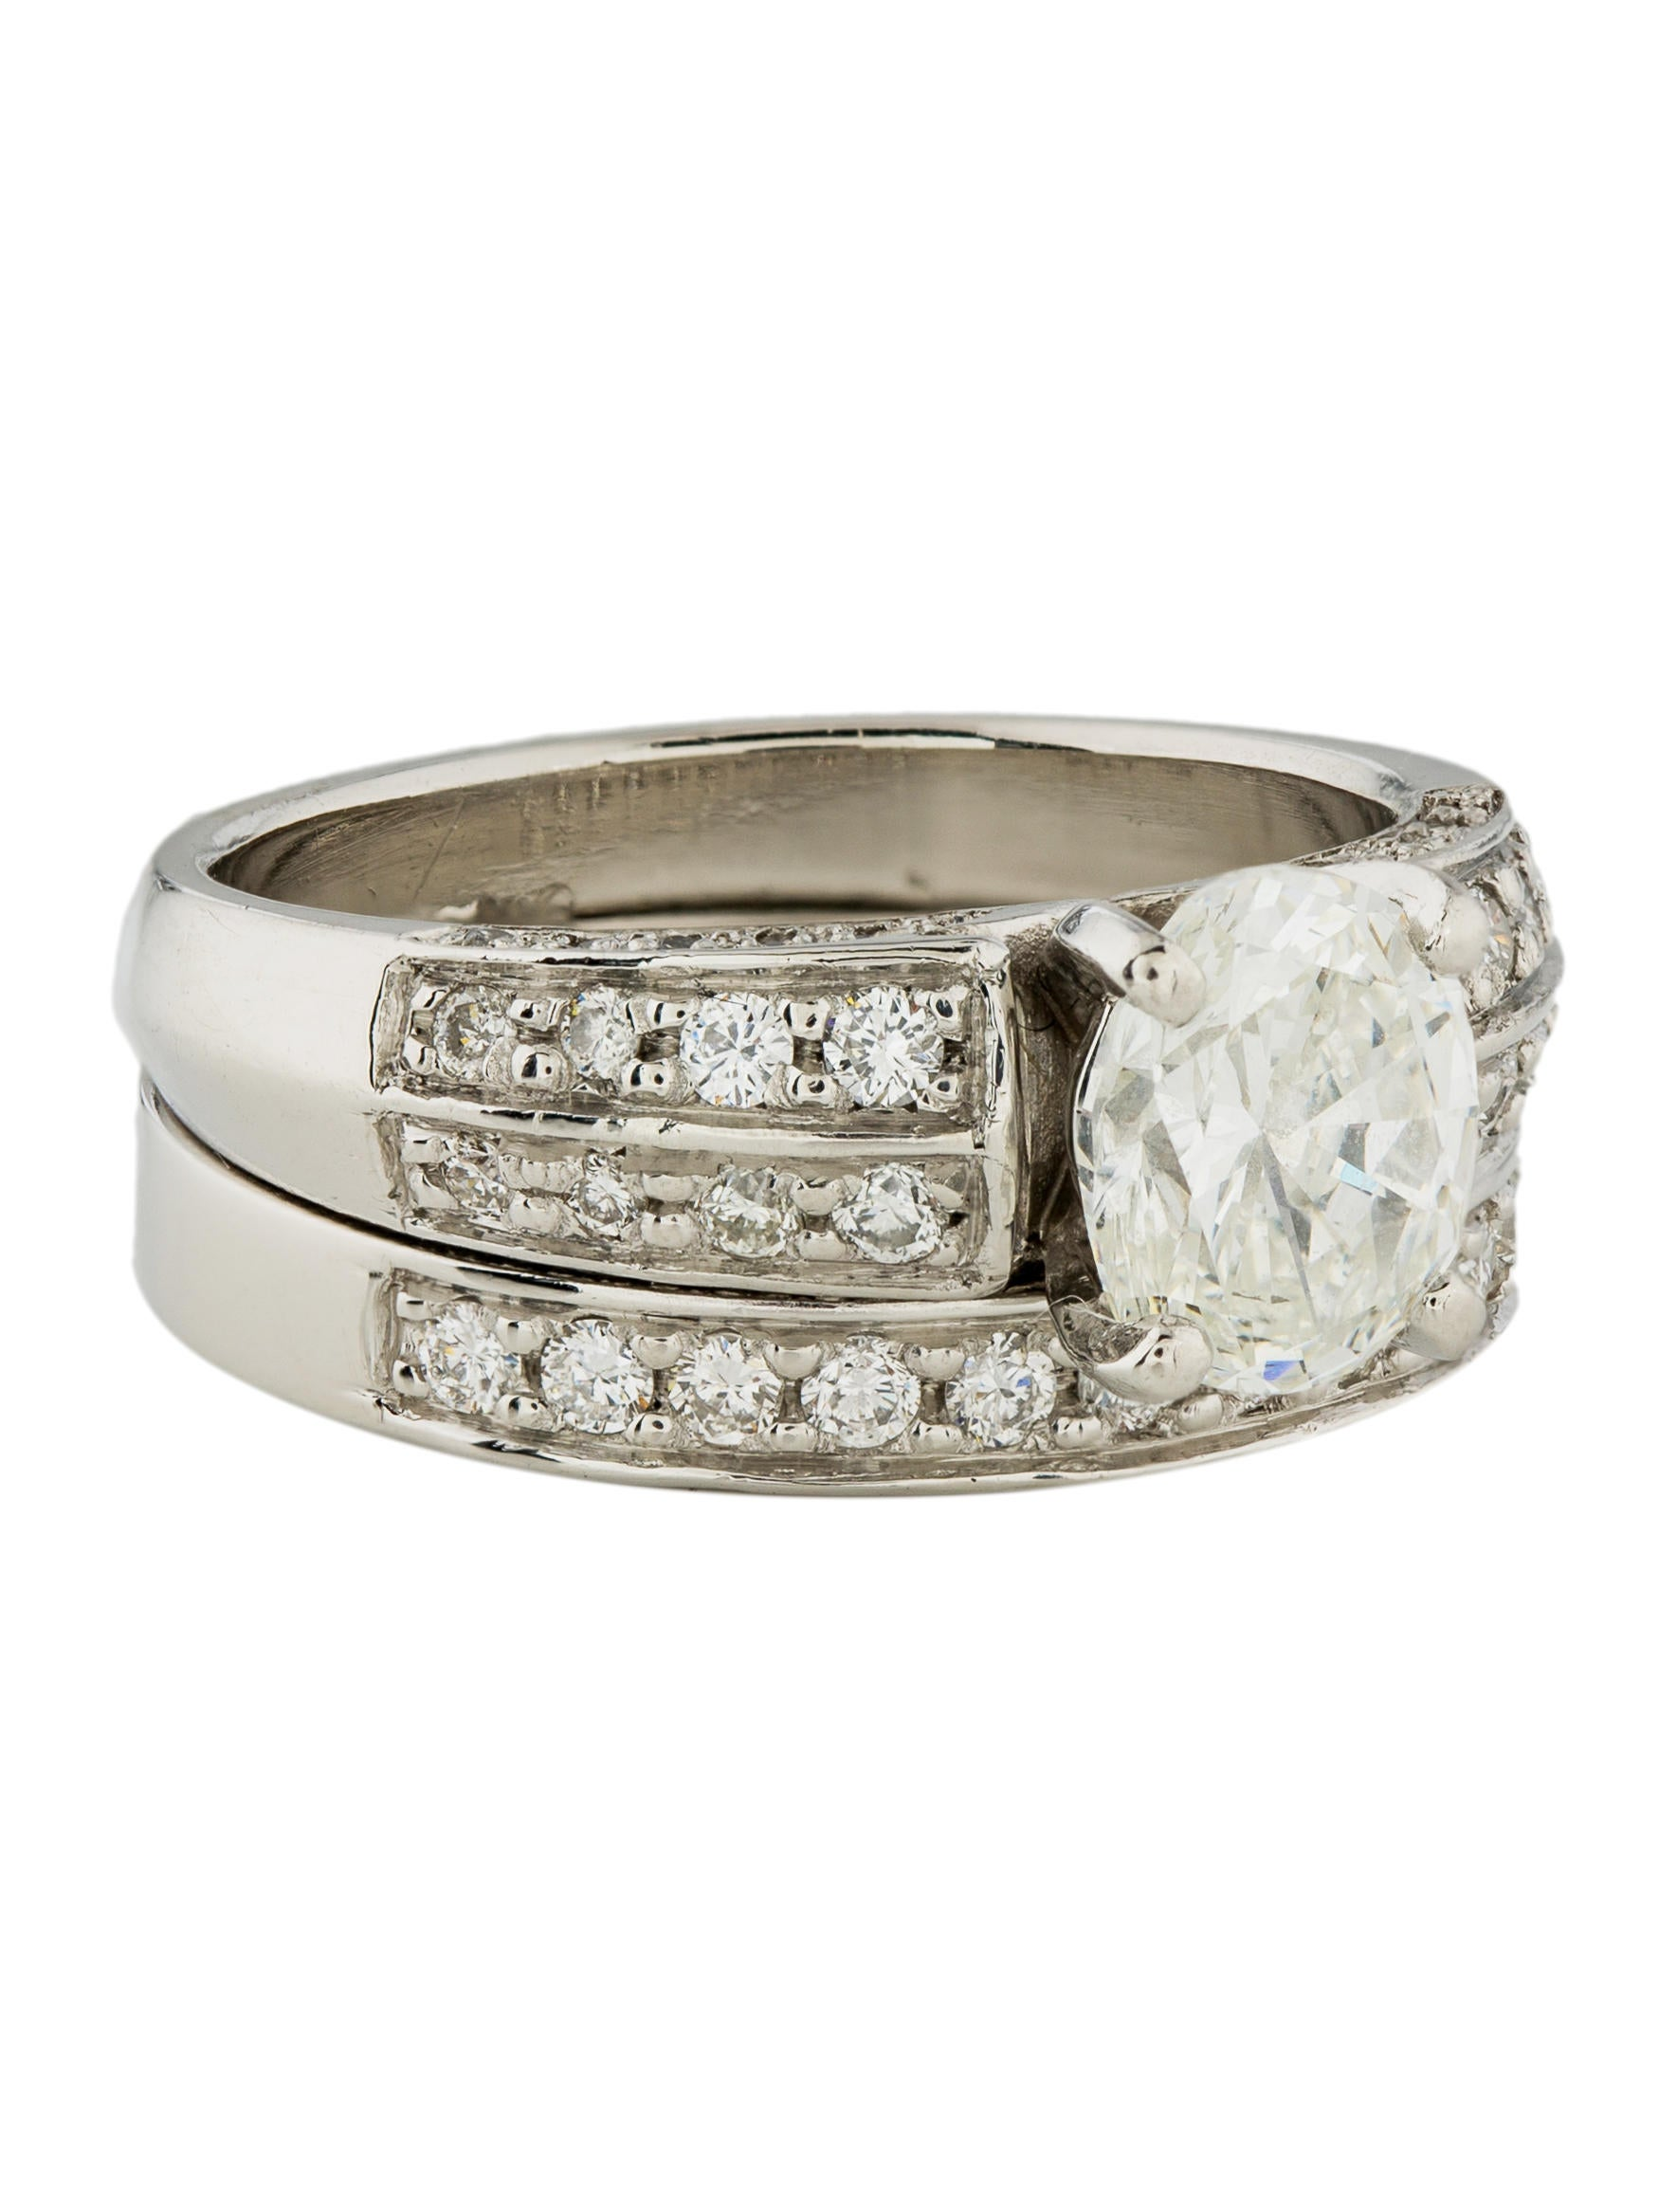 Platinum diamond wedding set ring rings rring34533 for Platinum wedding rings